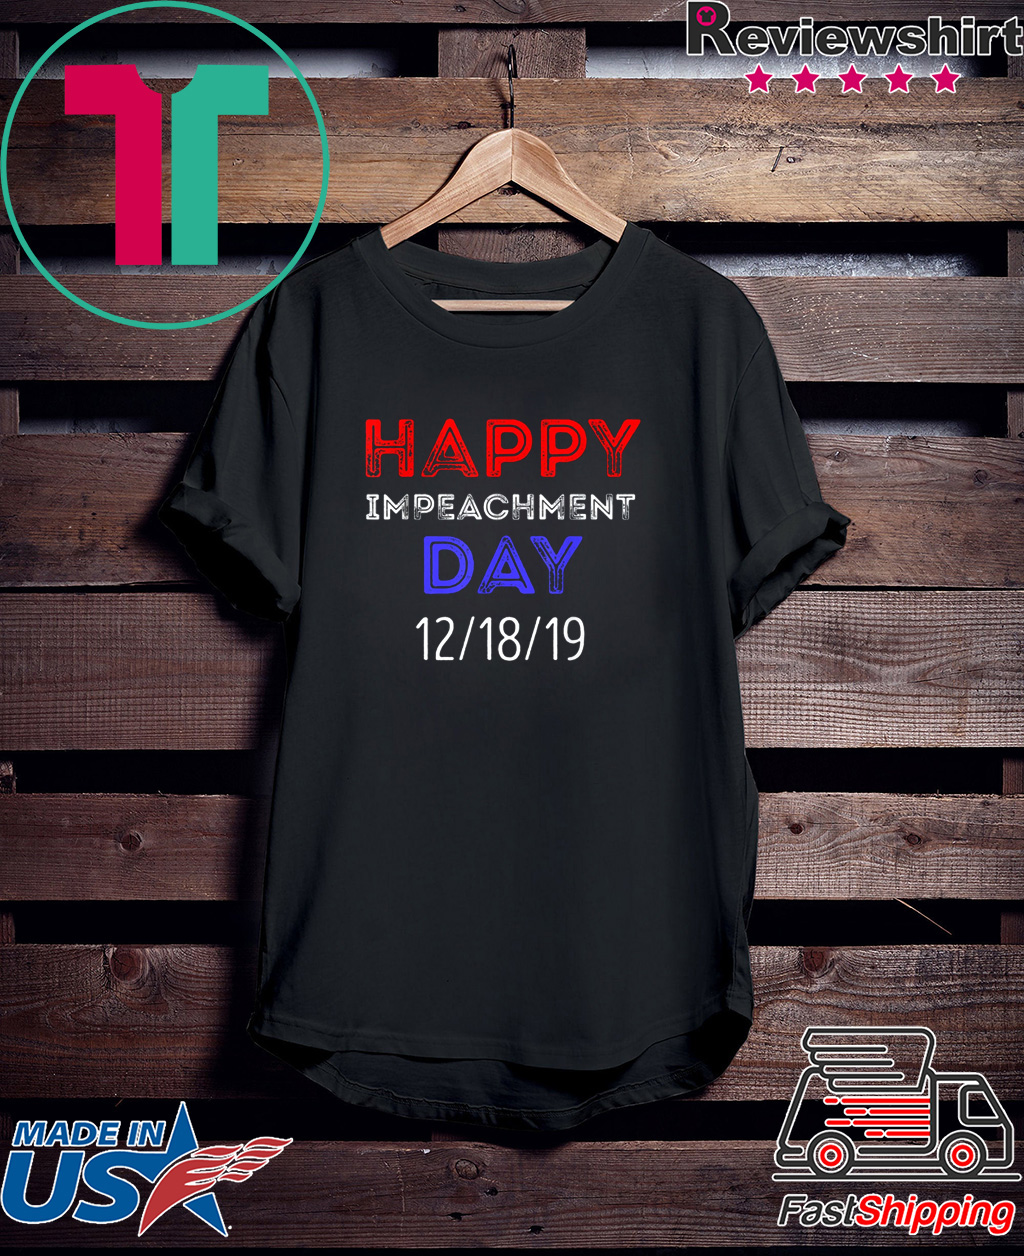 Happy Impeachment Day President Trump Political Gift T-Shirt